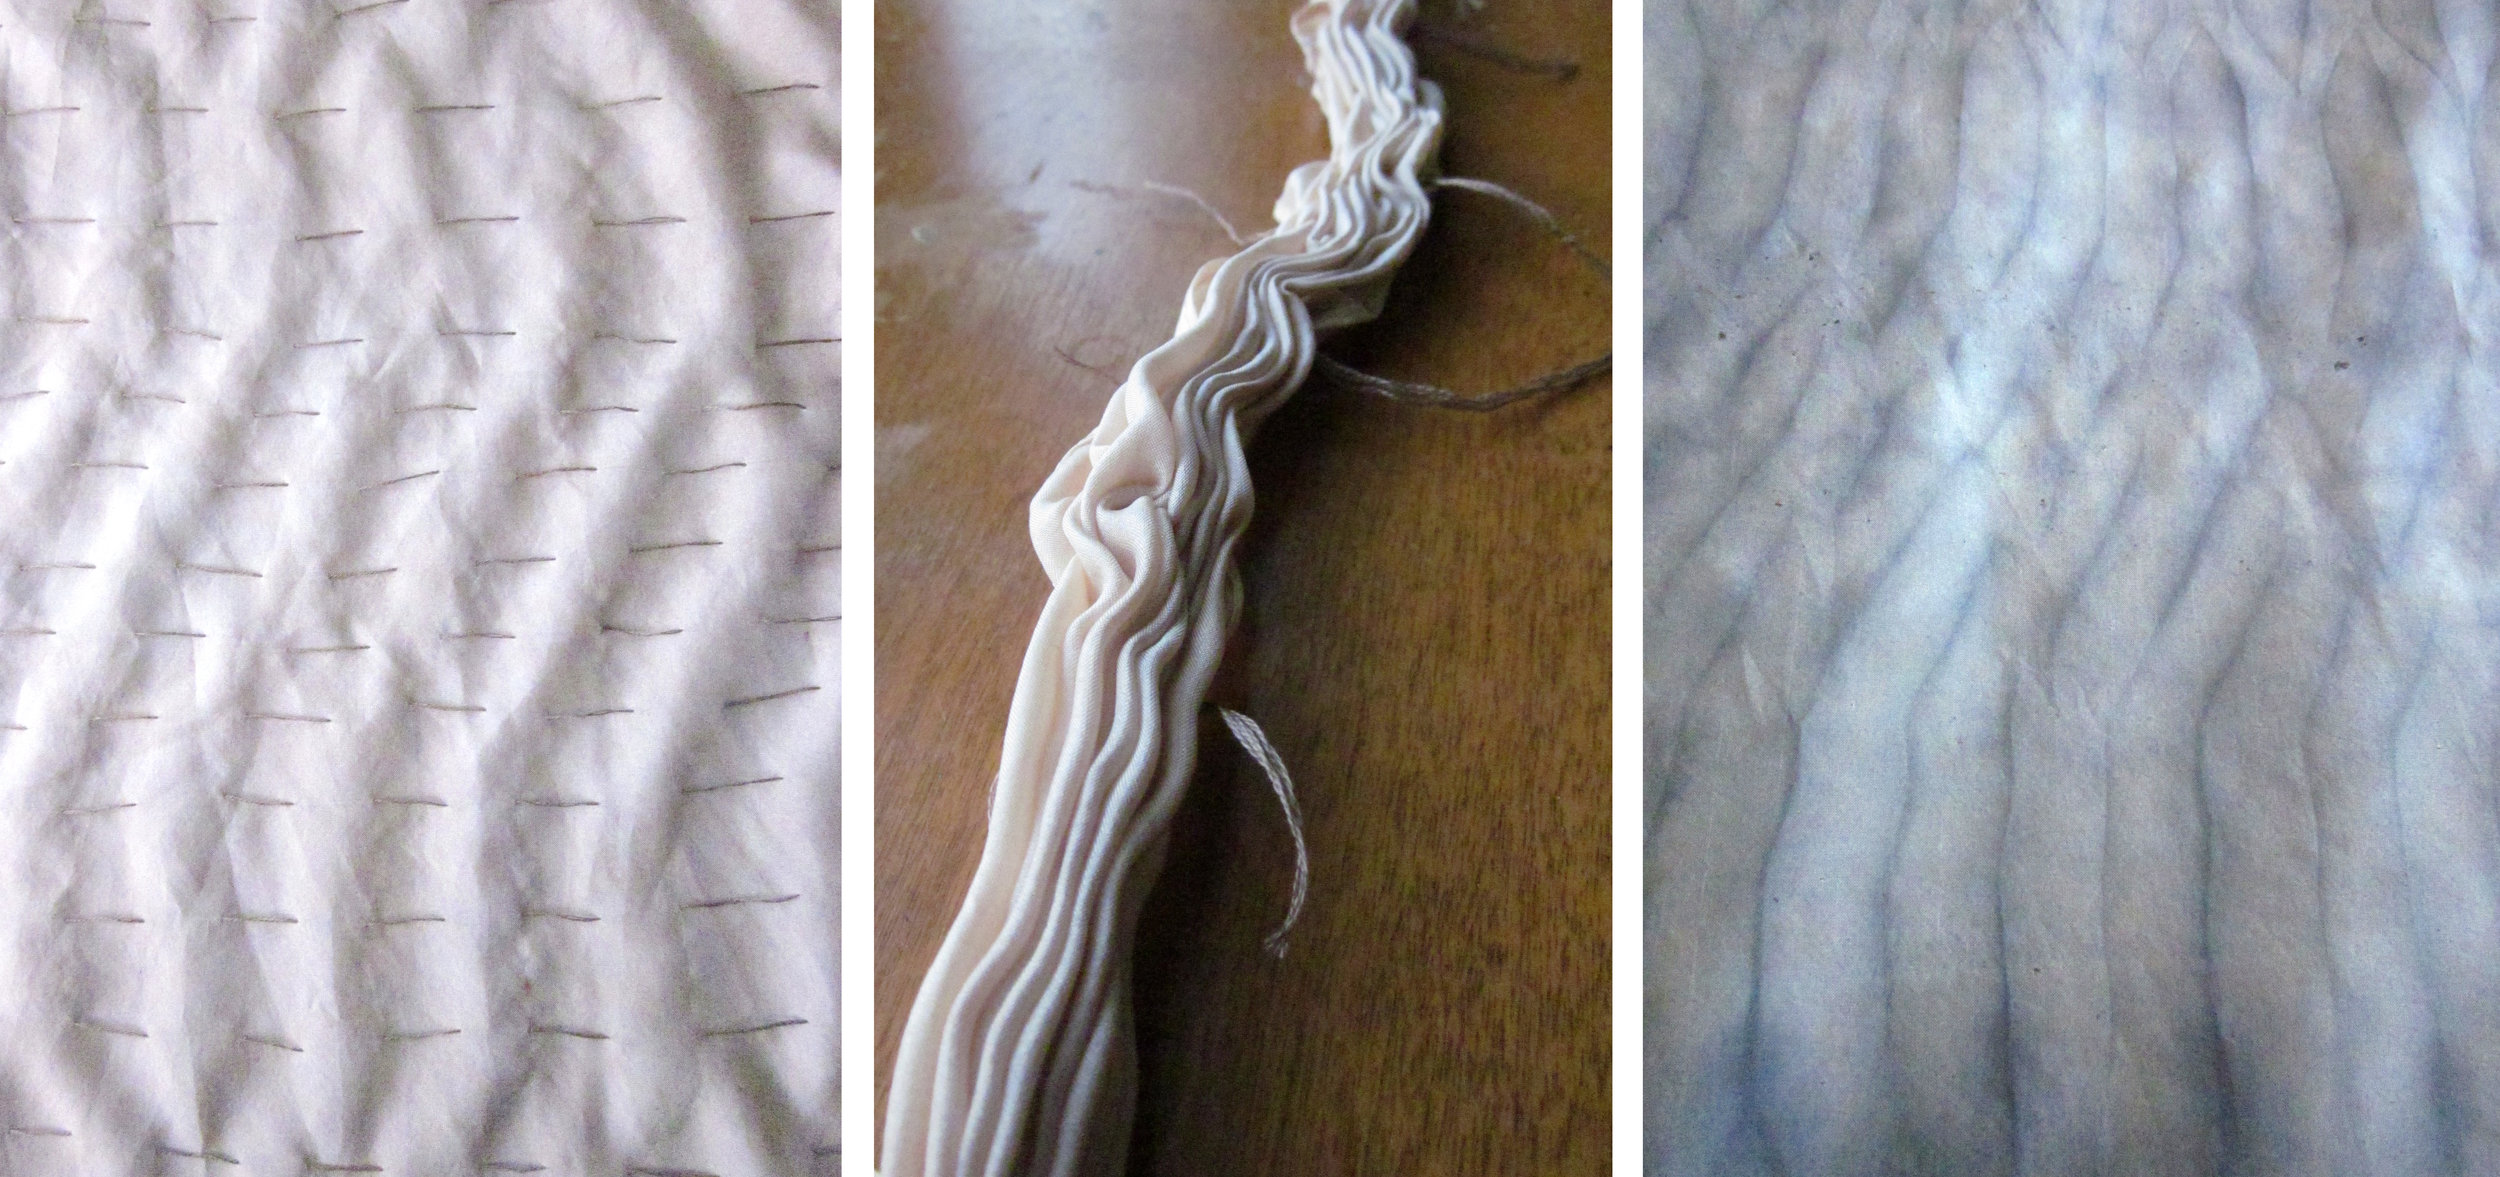 Another shibori technique utilizes rows of running stitches, gathered tightly as a resist